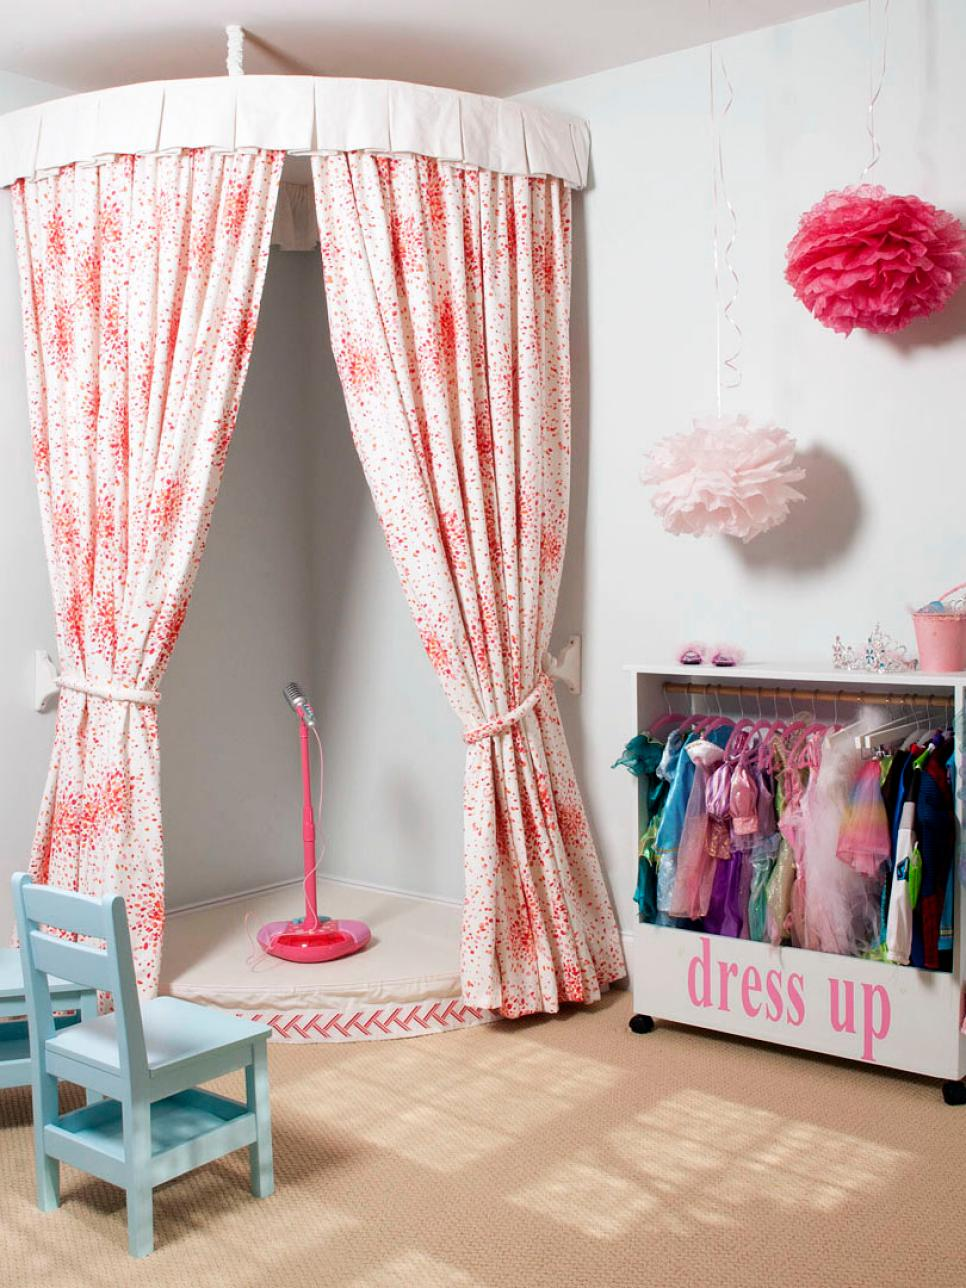 dp_liz-carroll-playroom-dress-up-area_s3x4-jpg-rend-hgtvcom-966-1288